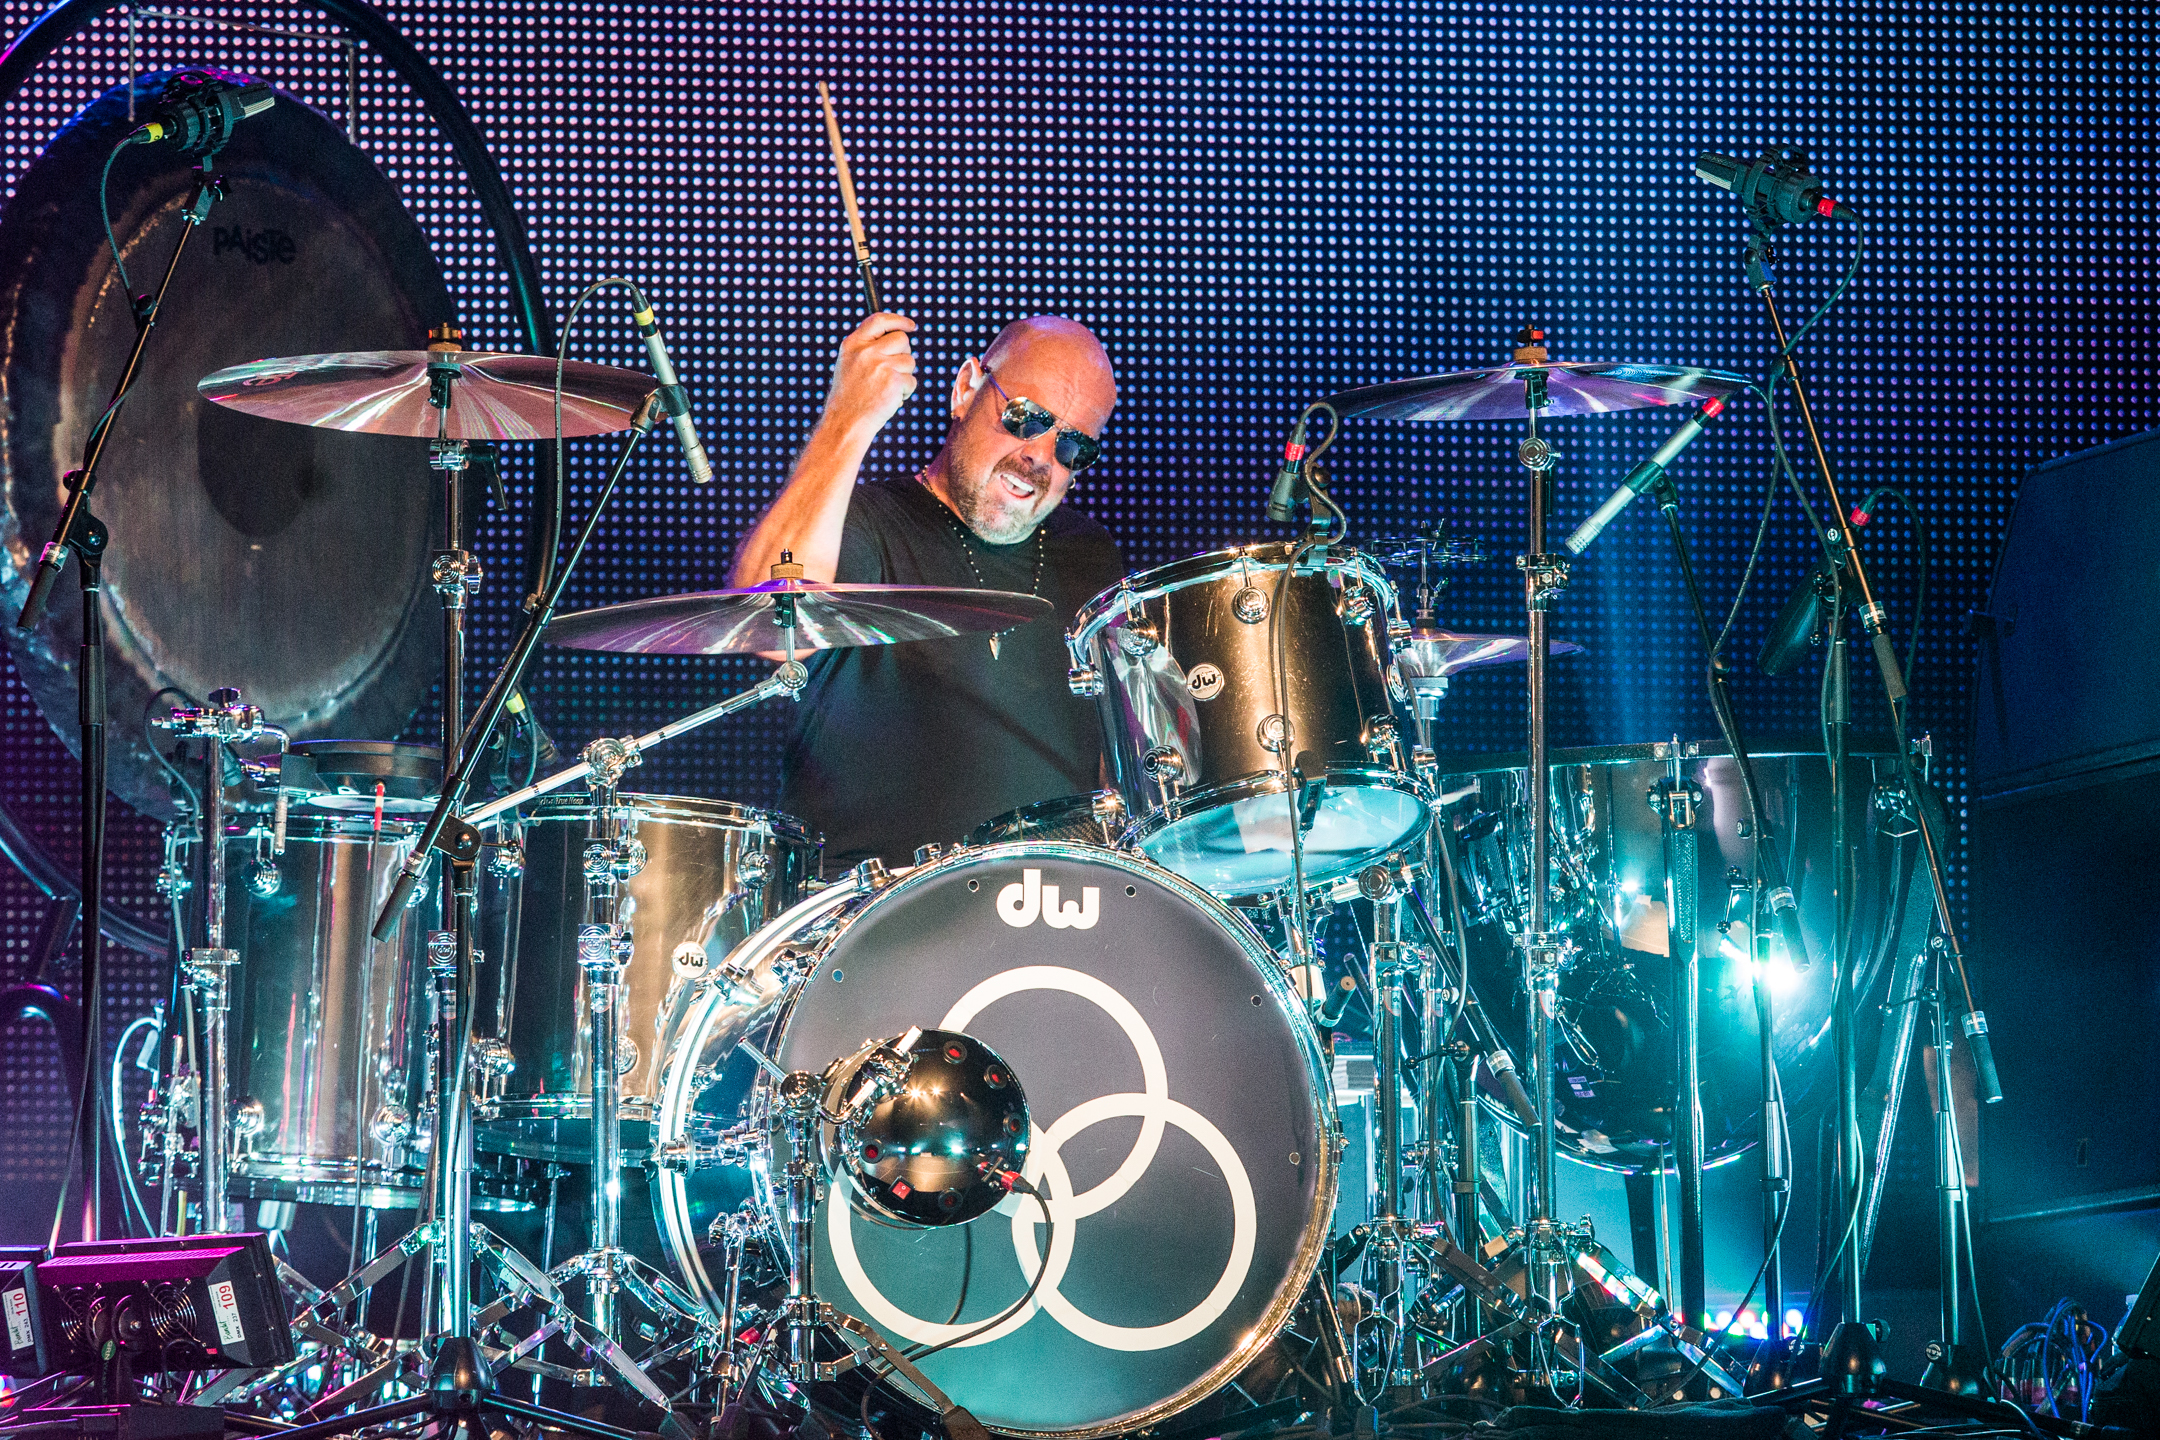 jason bonham 39 s led zeppelin experience live at the rocksino the rust belt chronicles. Black Bedroom Furniture Sets. Home Design Ideas